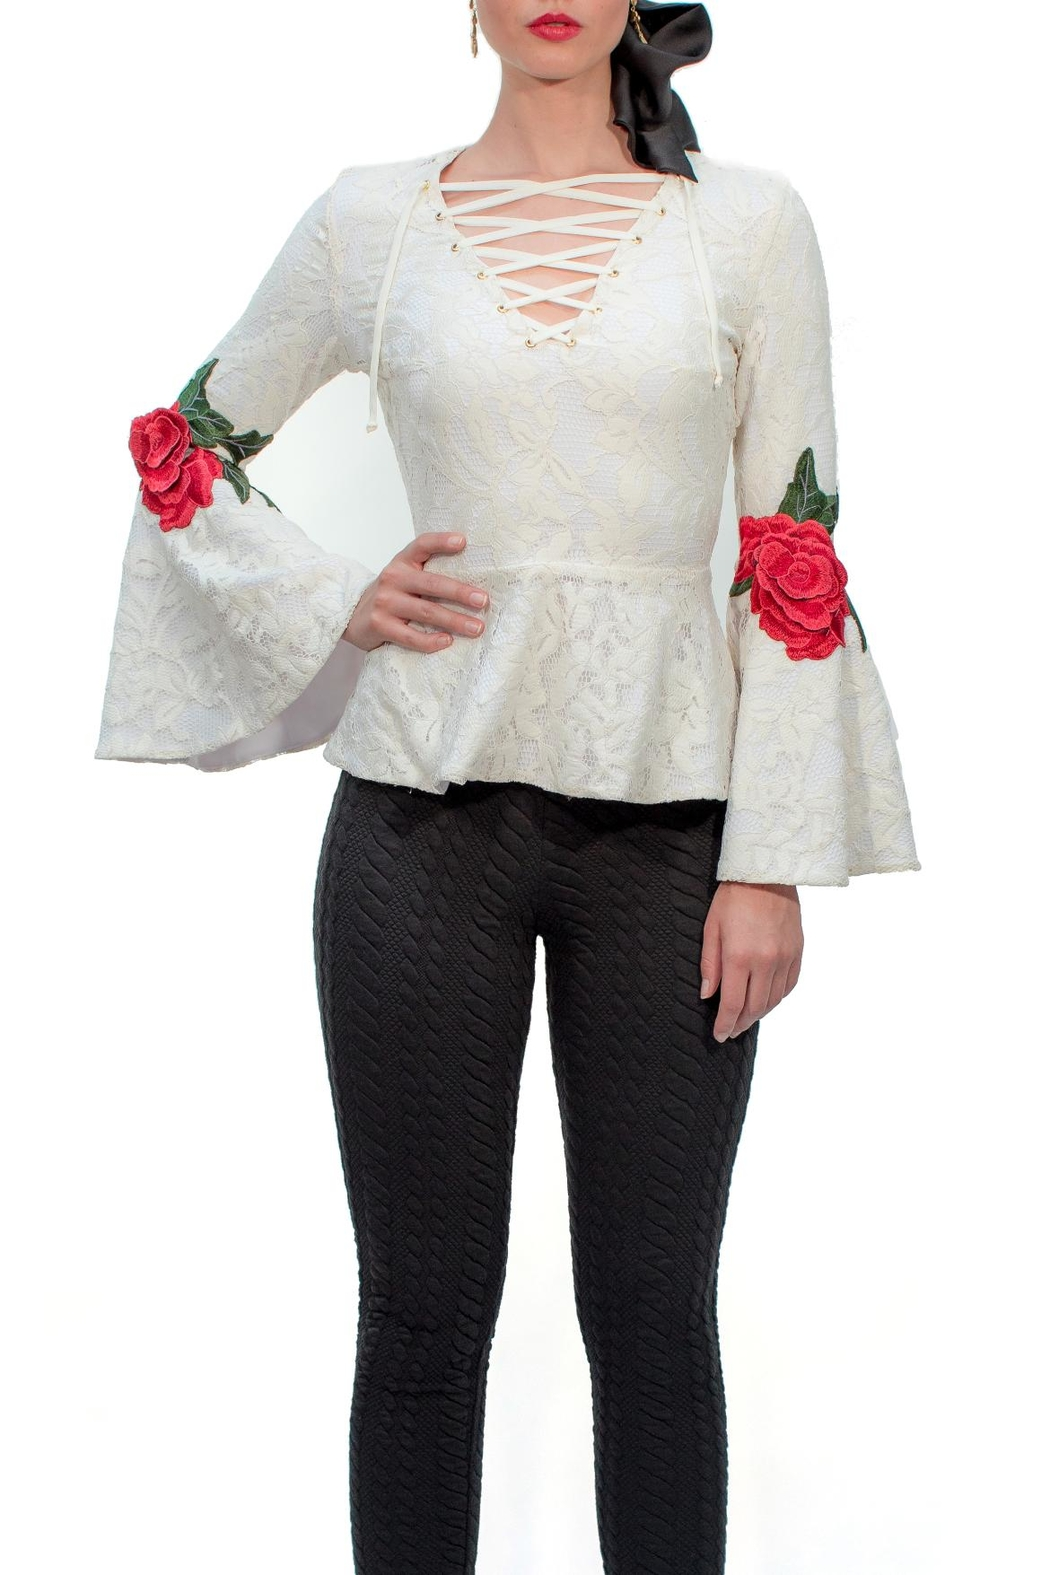 Viesca y Viesca Lace Embroided Blouse - Front Cropped Image